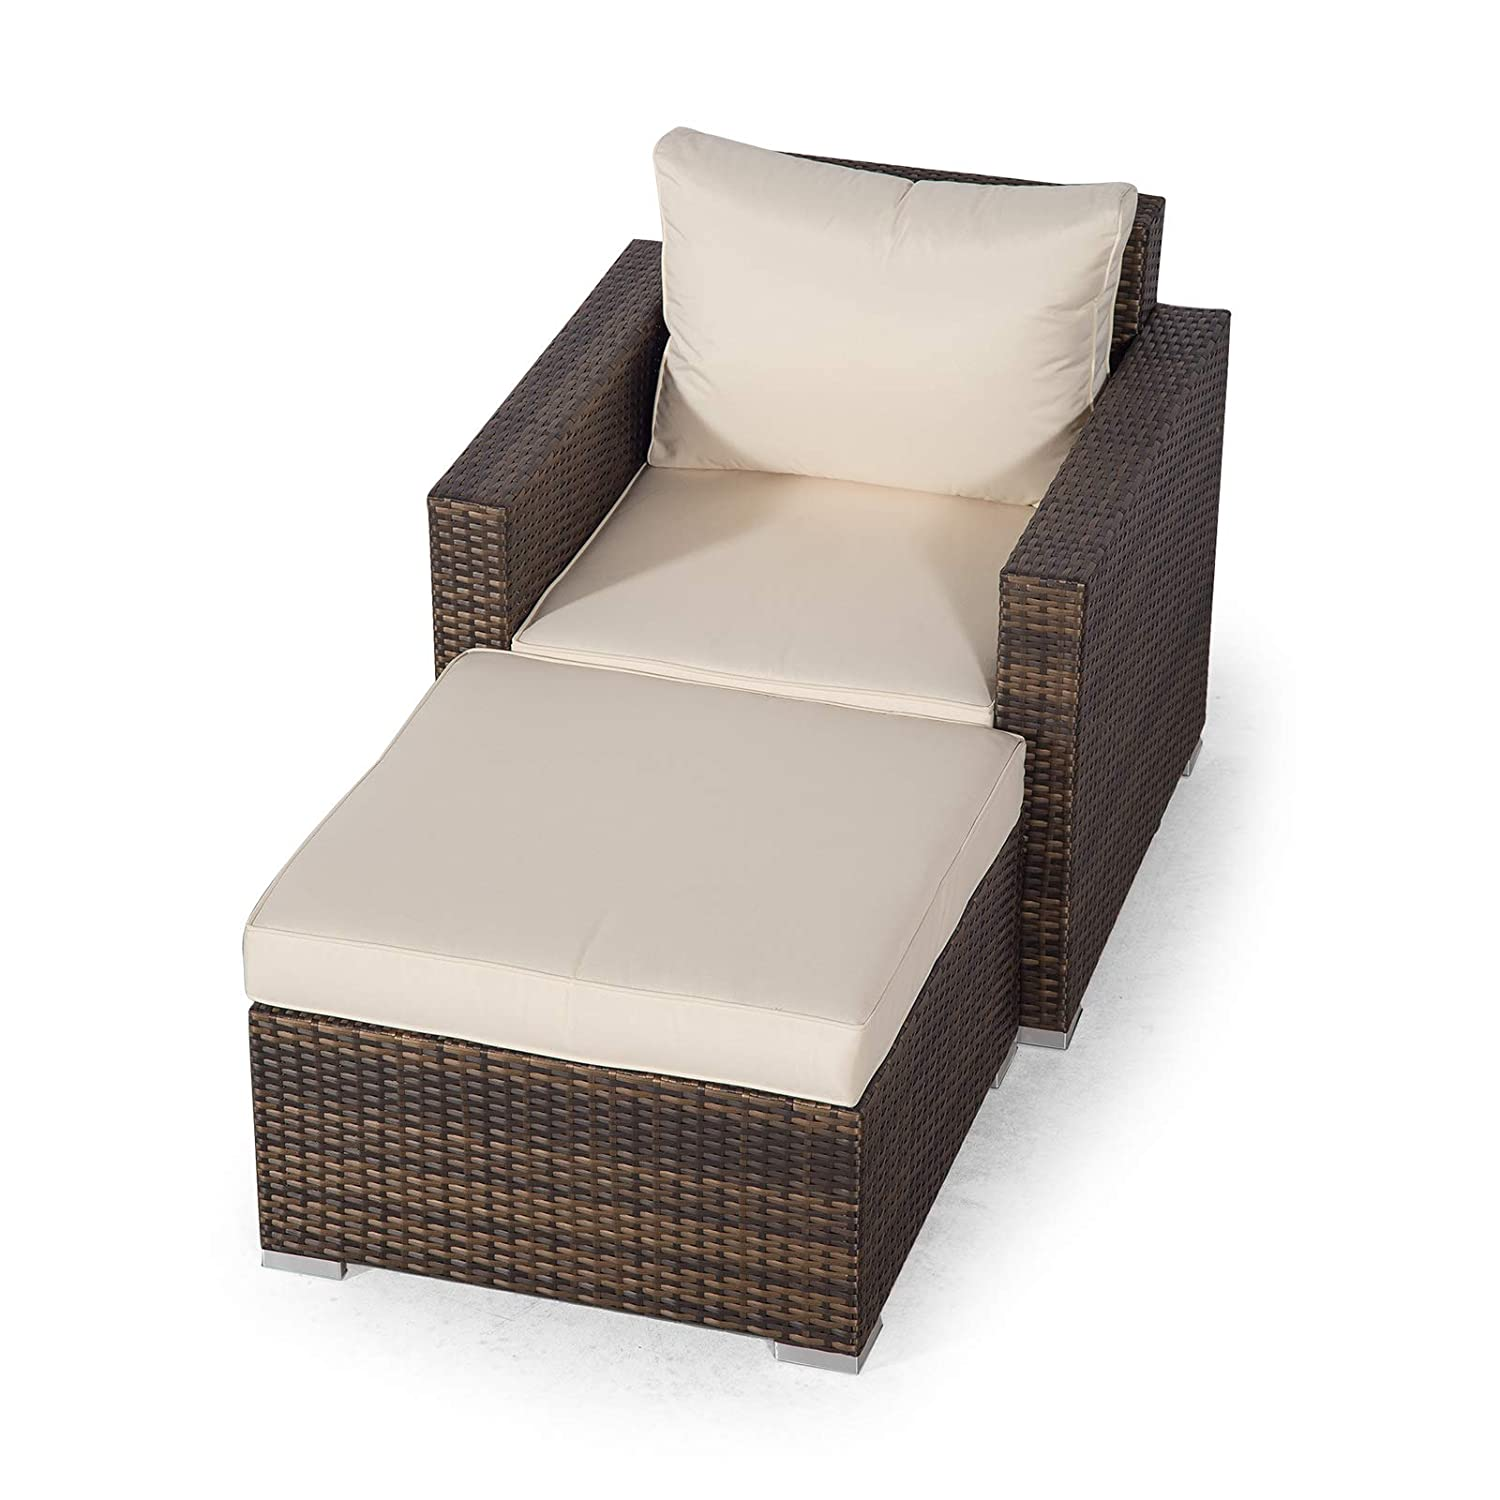 Set Giardino In Rattan.Giardino Sydney Brown Rattan Armchair Ottoman Lounge Chair Set